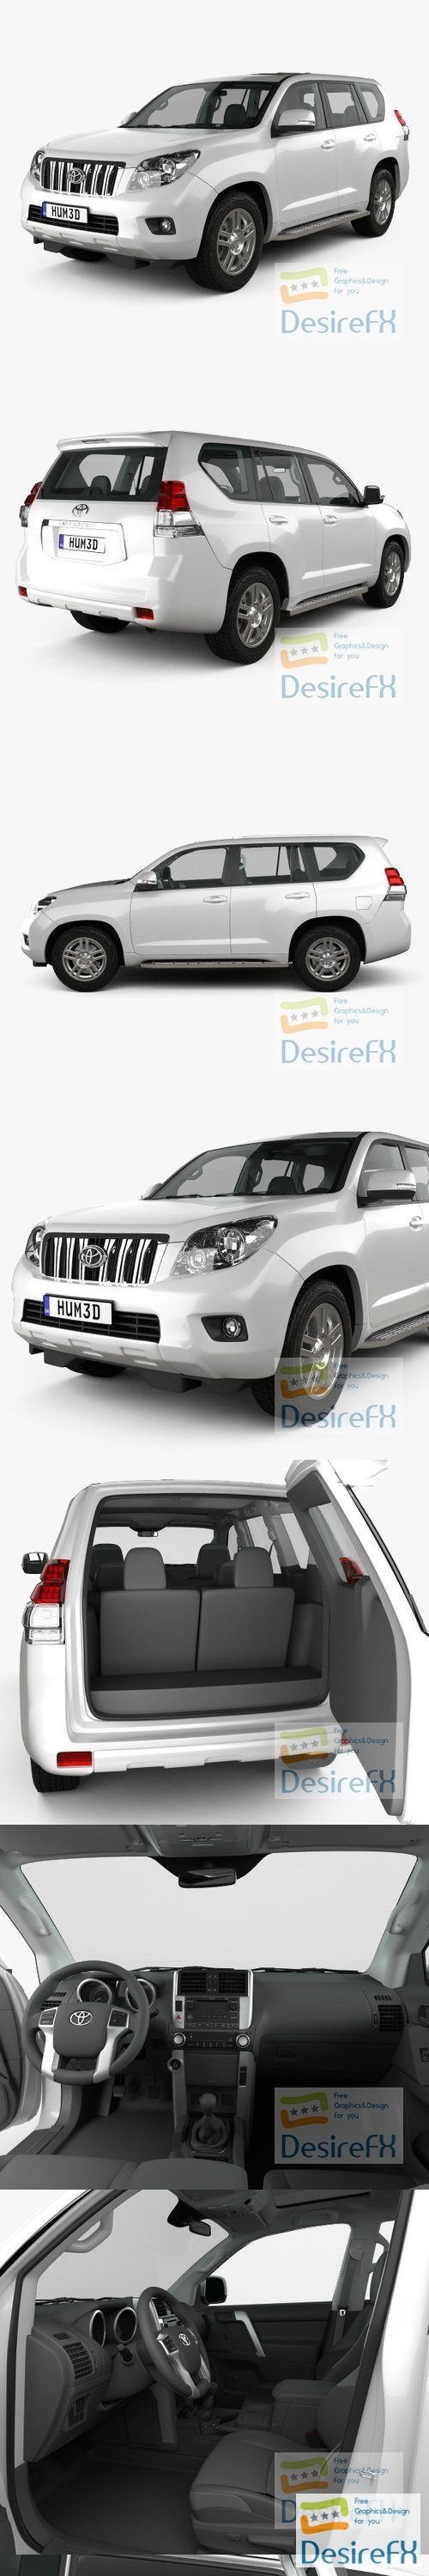 Toyota Land Cruiser Prado 5-door with HQ interior 2010 3D Model